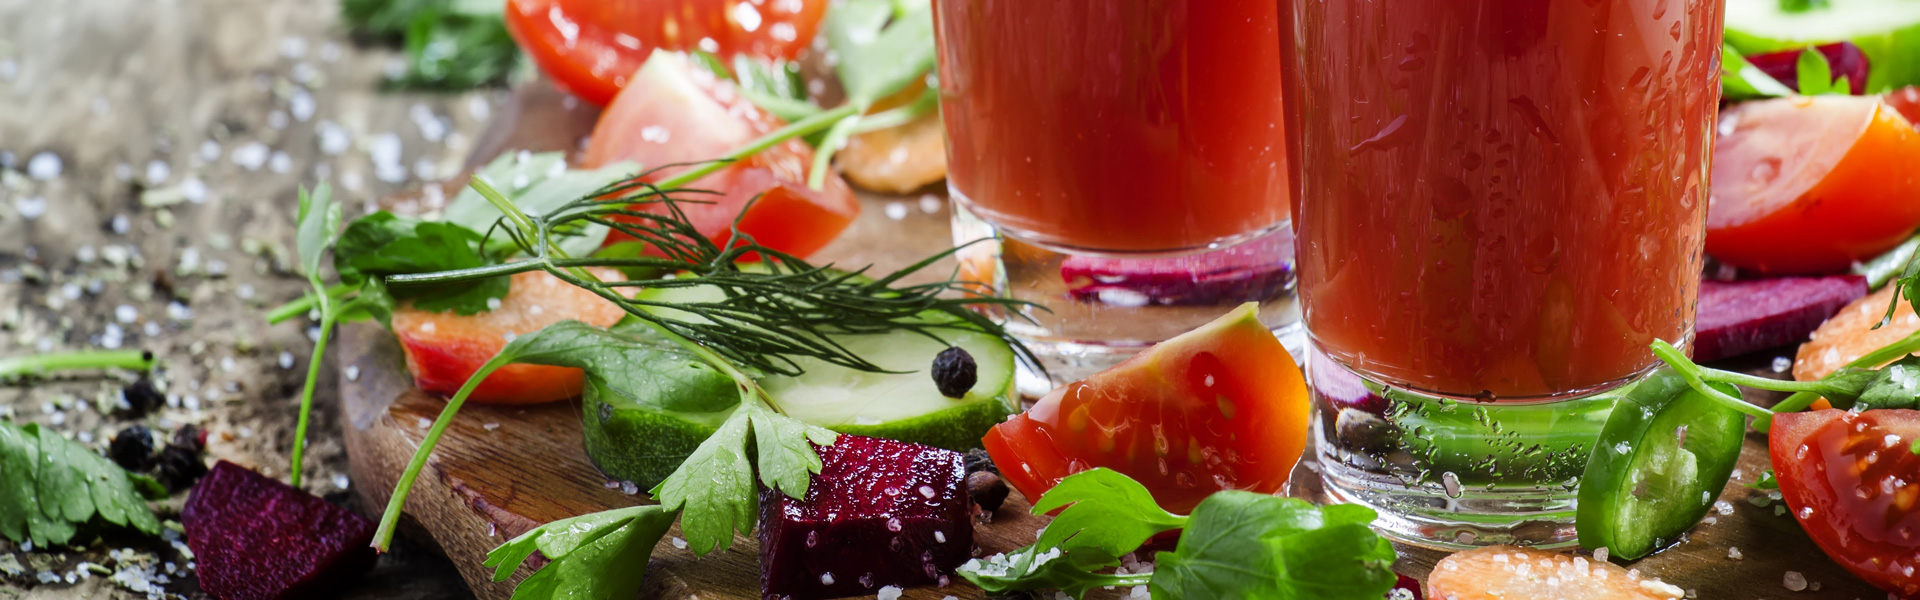 Food To Eat After Gallstone Surgery